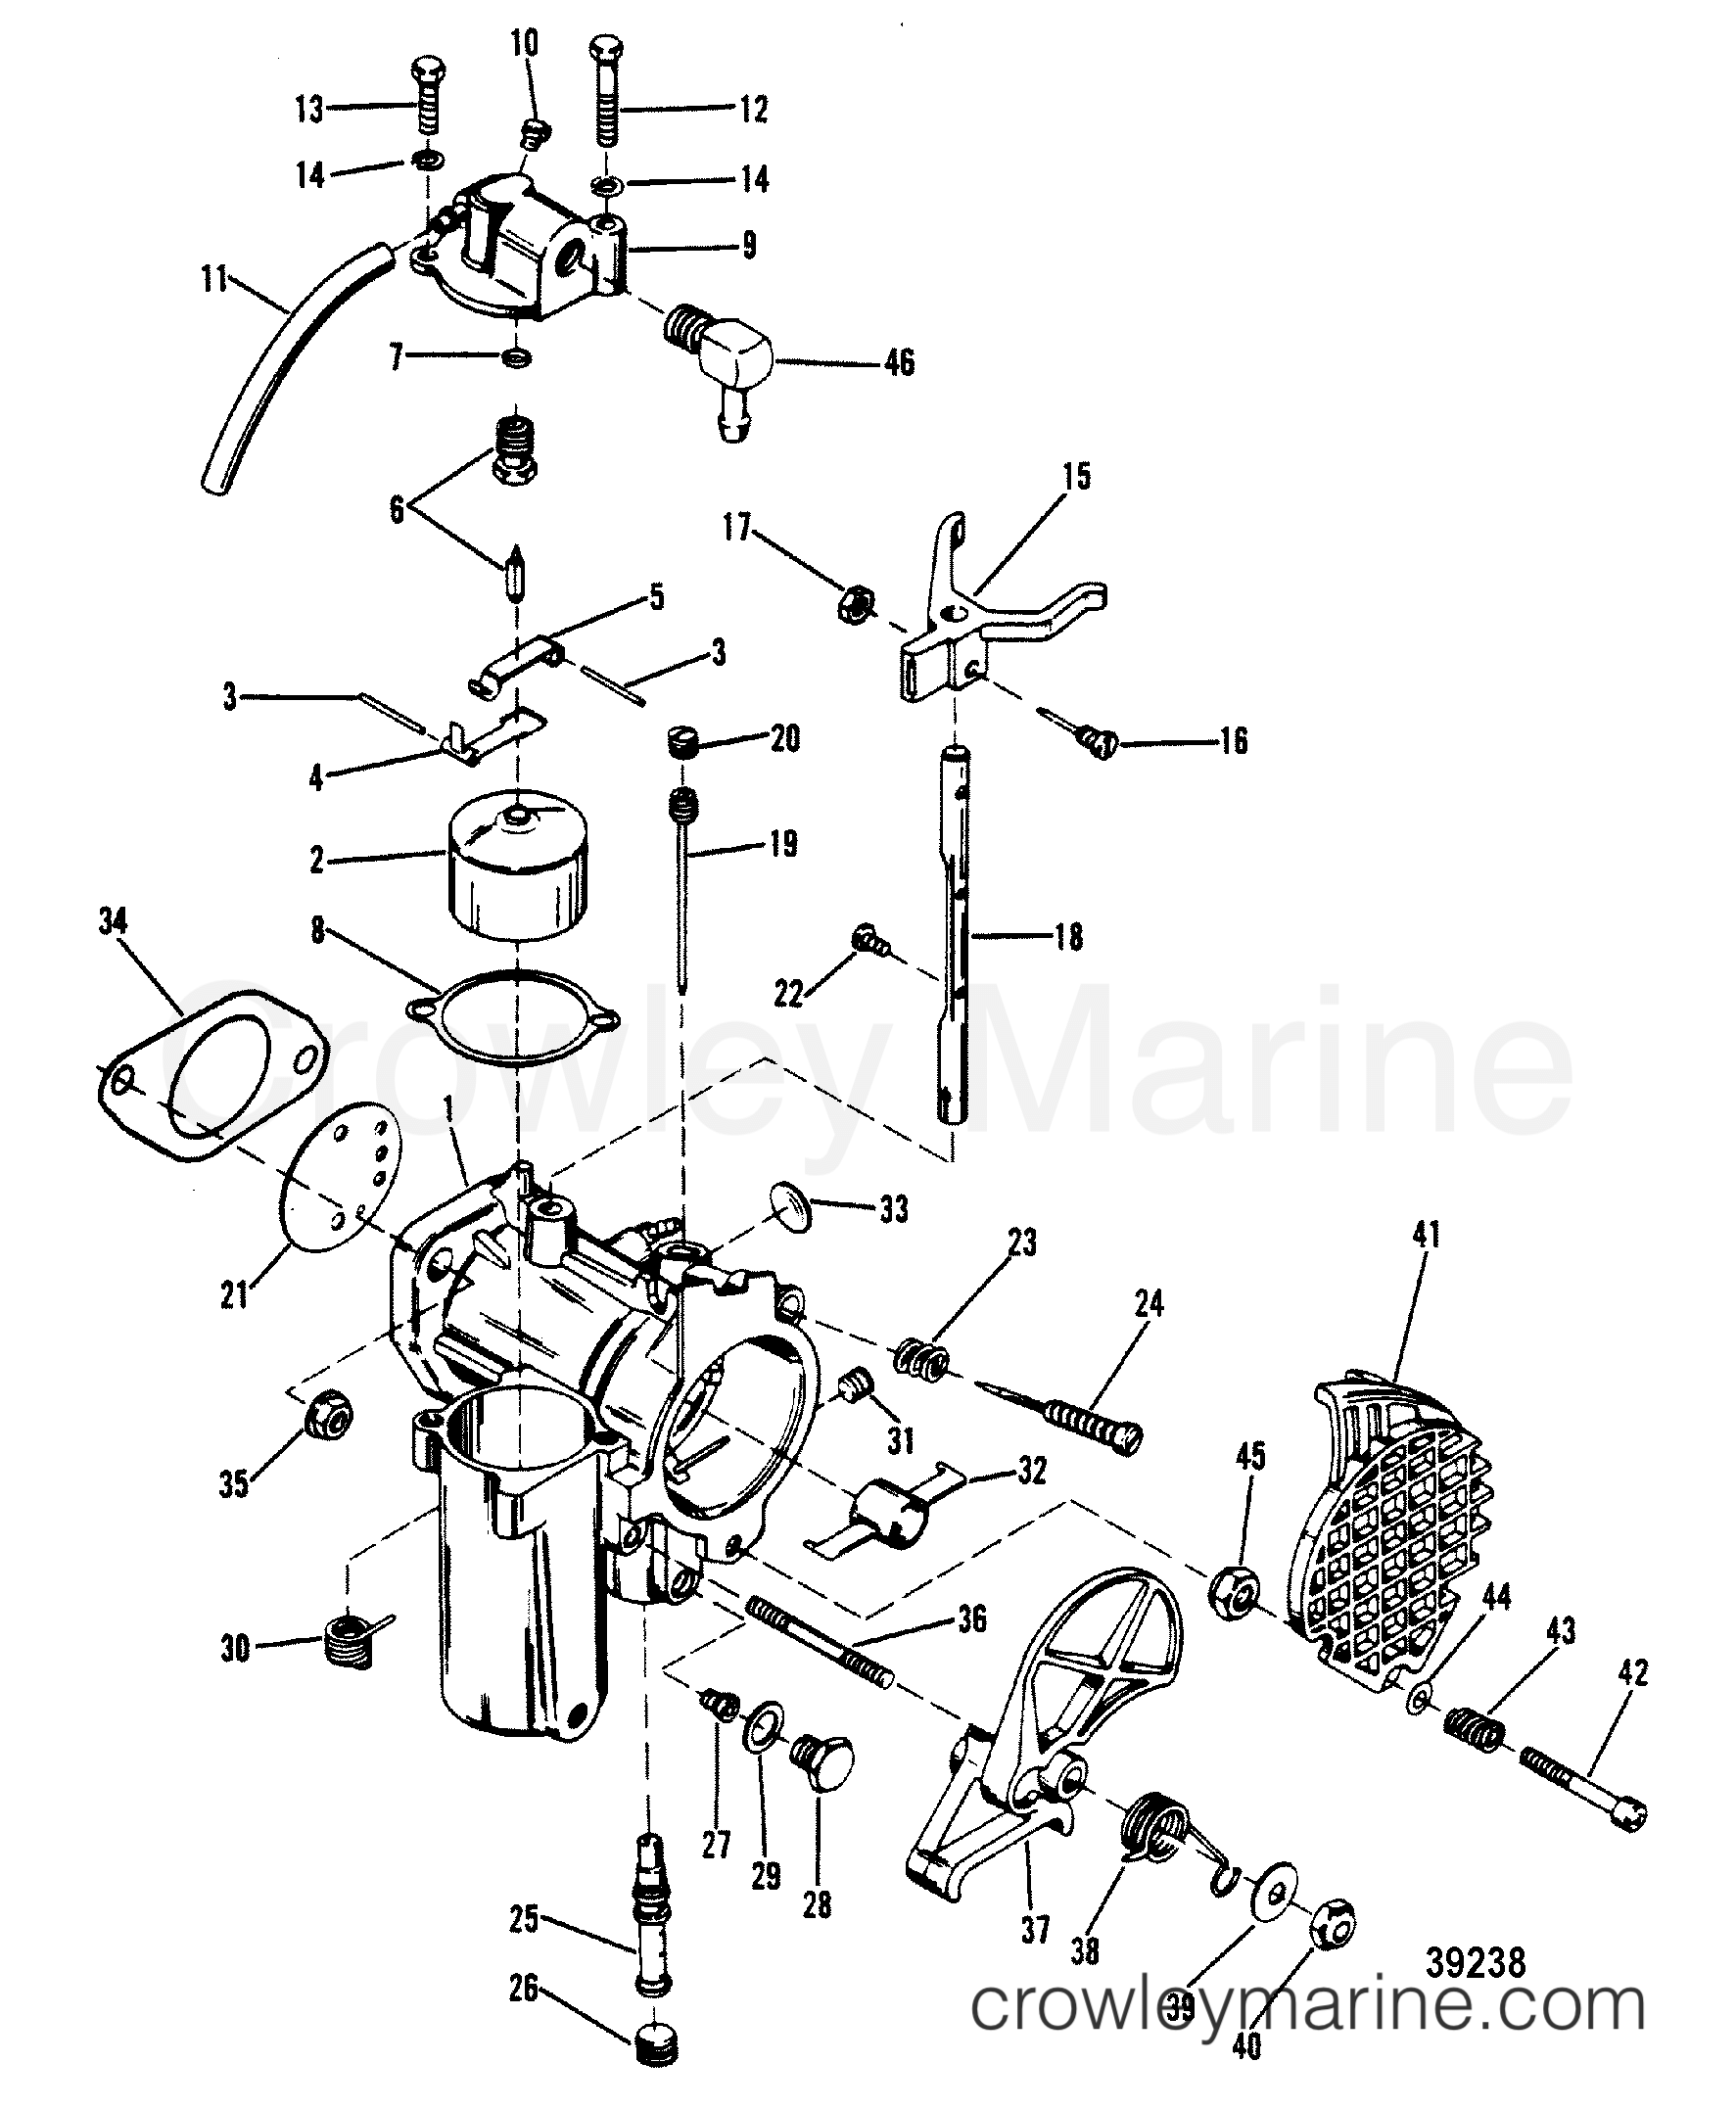 mercury carb diagram best wiring library Murray 42910x92A Diagram for Briggs and Stratton 16Hp 1980 mercury outboard 40 eh 1040530 carburetor assembly section